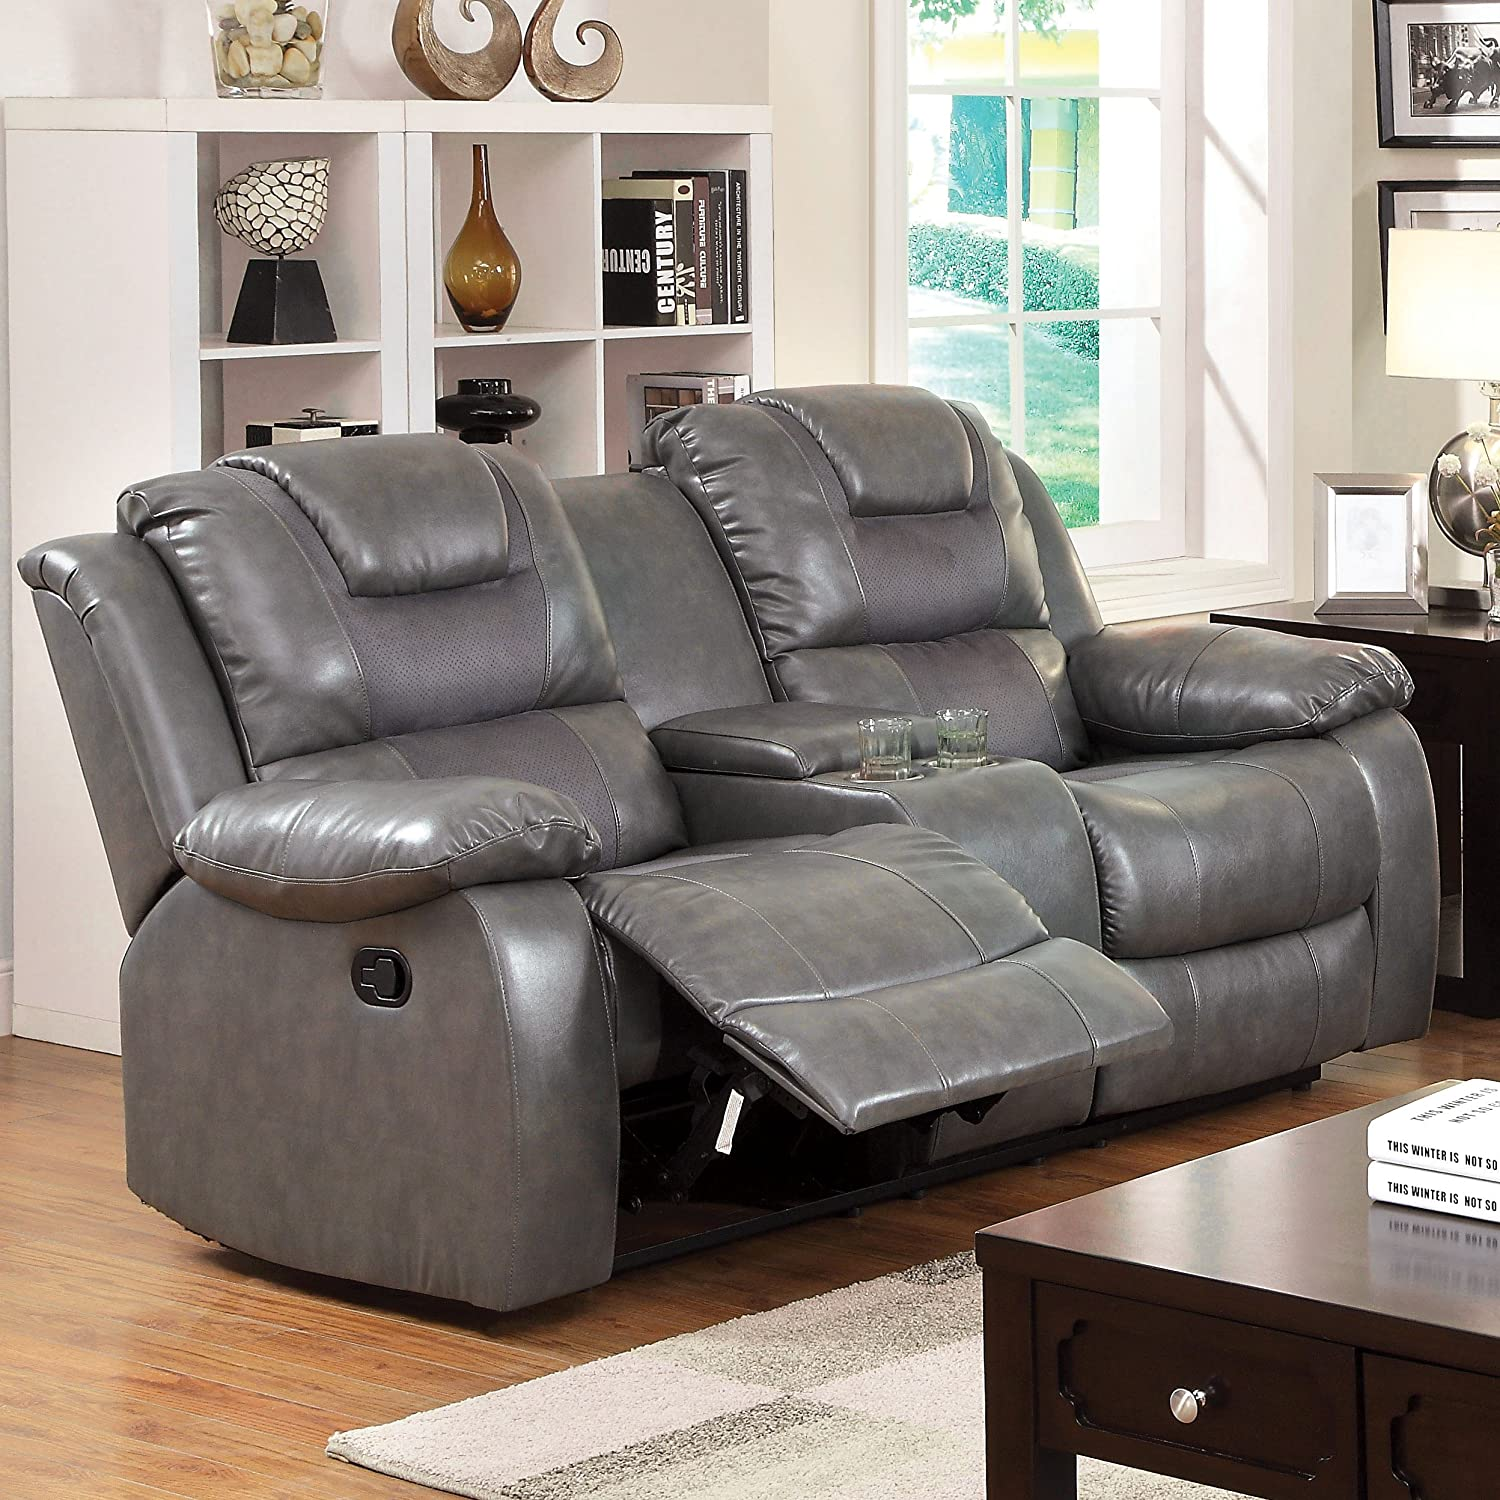 Furniture of America Steely 2-Recliner Love Seat